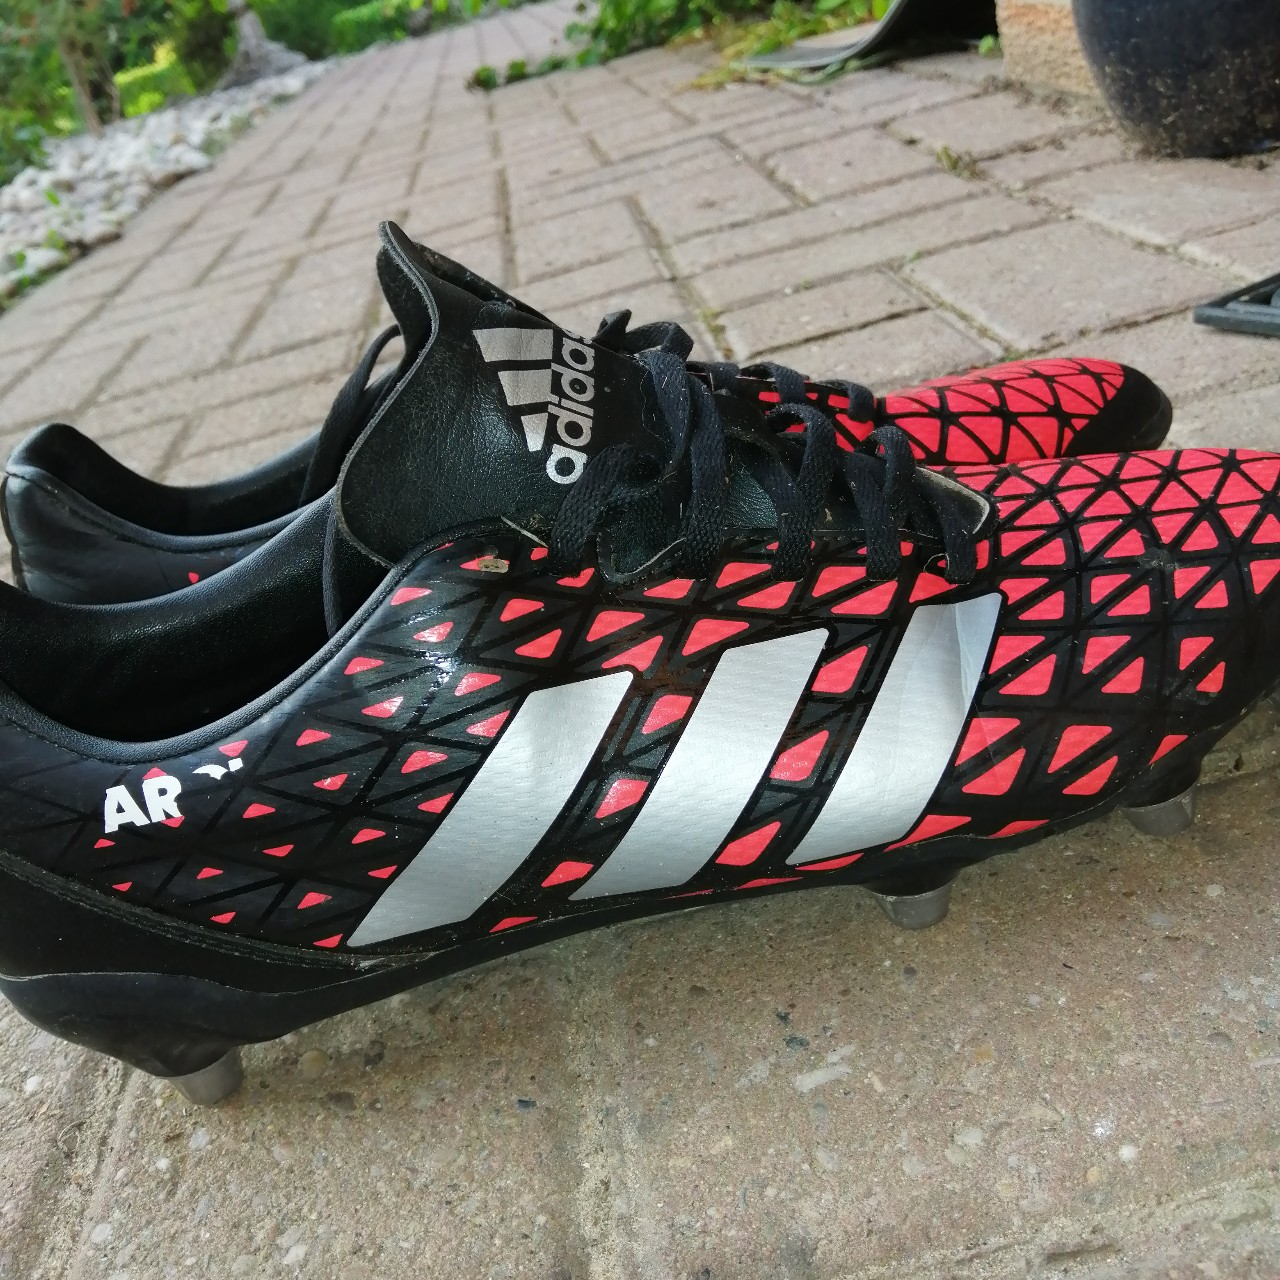 Adidas Rugby Boots Metal Studs Mens Uk 9 5 Used Depop